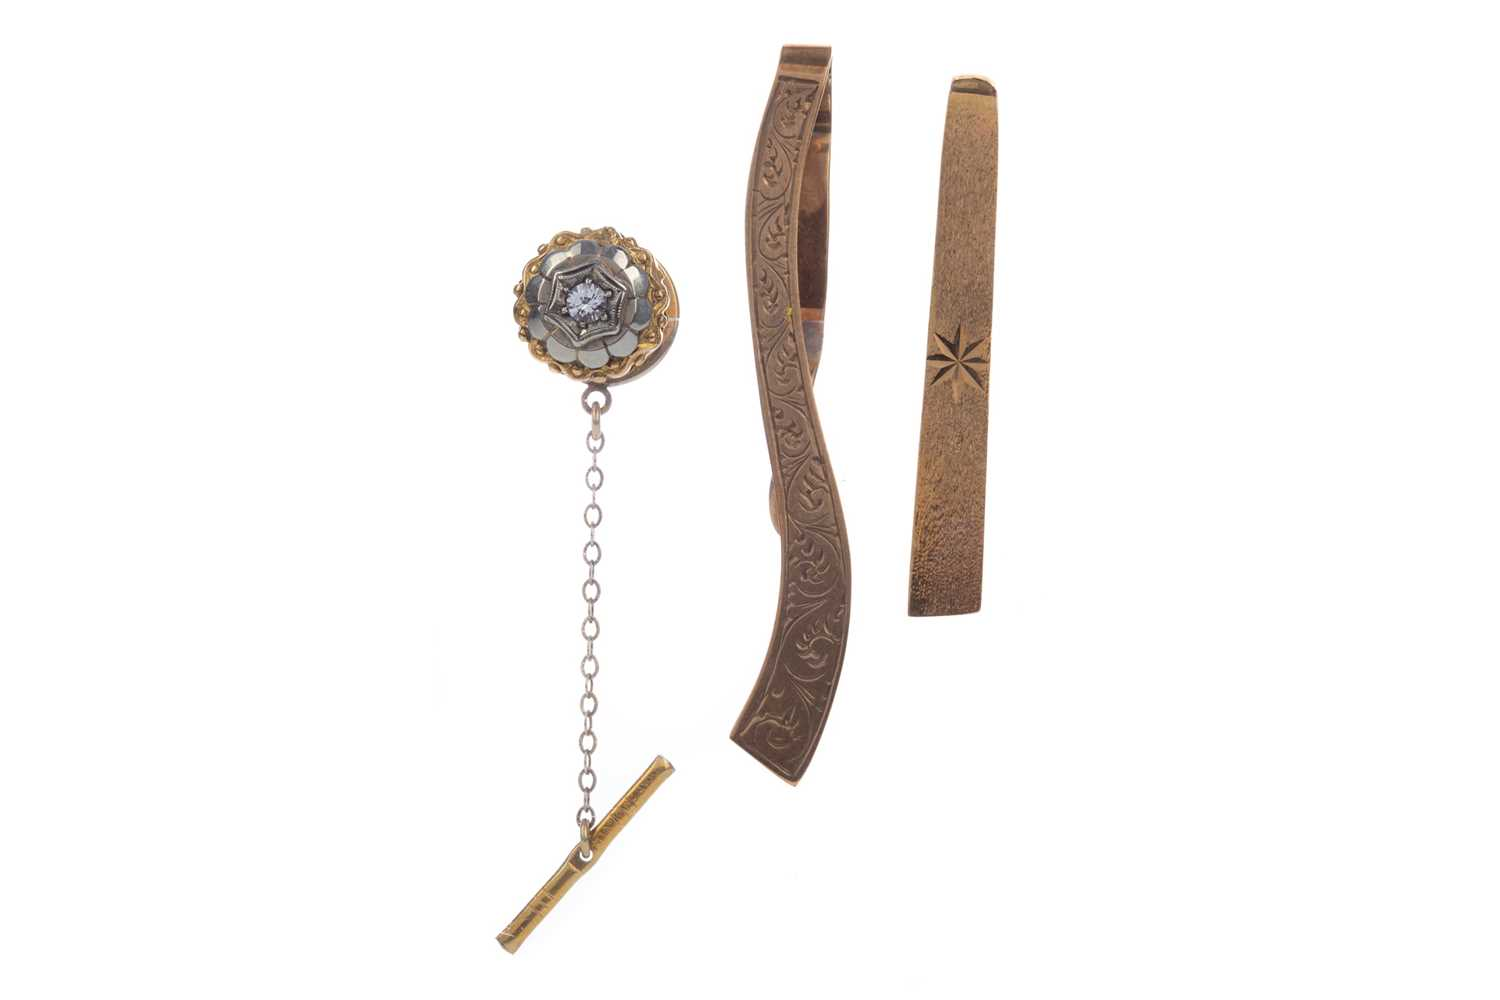 Lot 1322 - TWO TIE SLIDES AND A TIE PIN